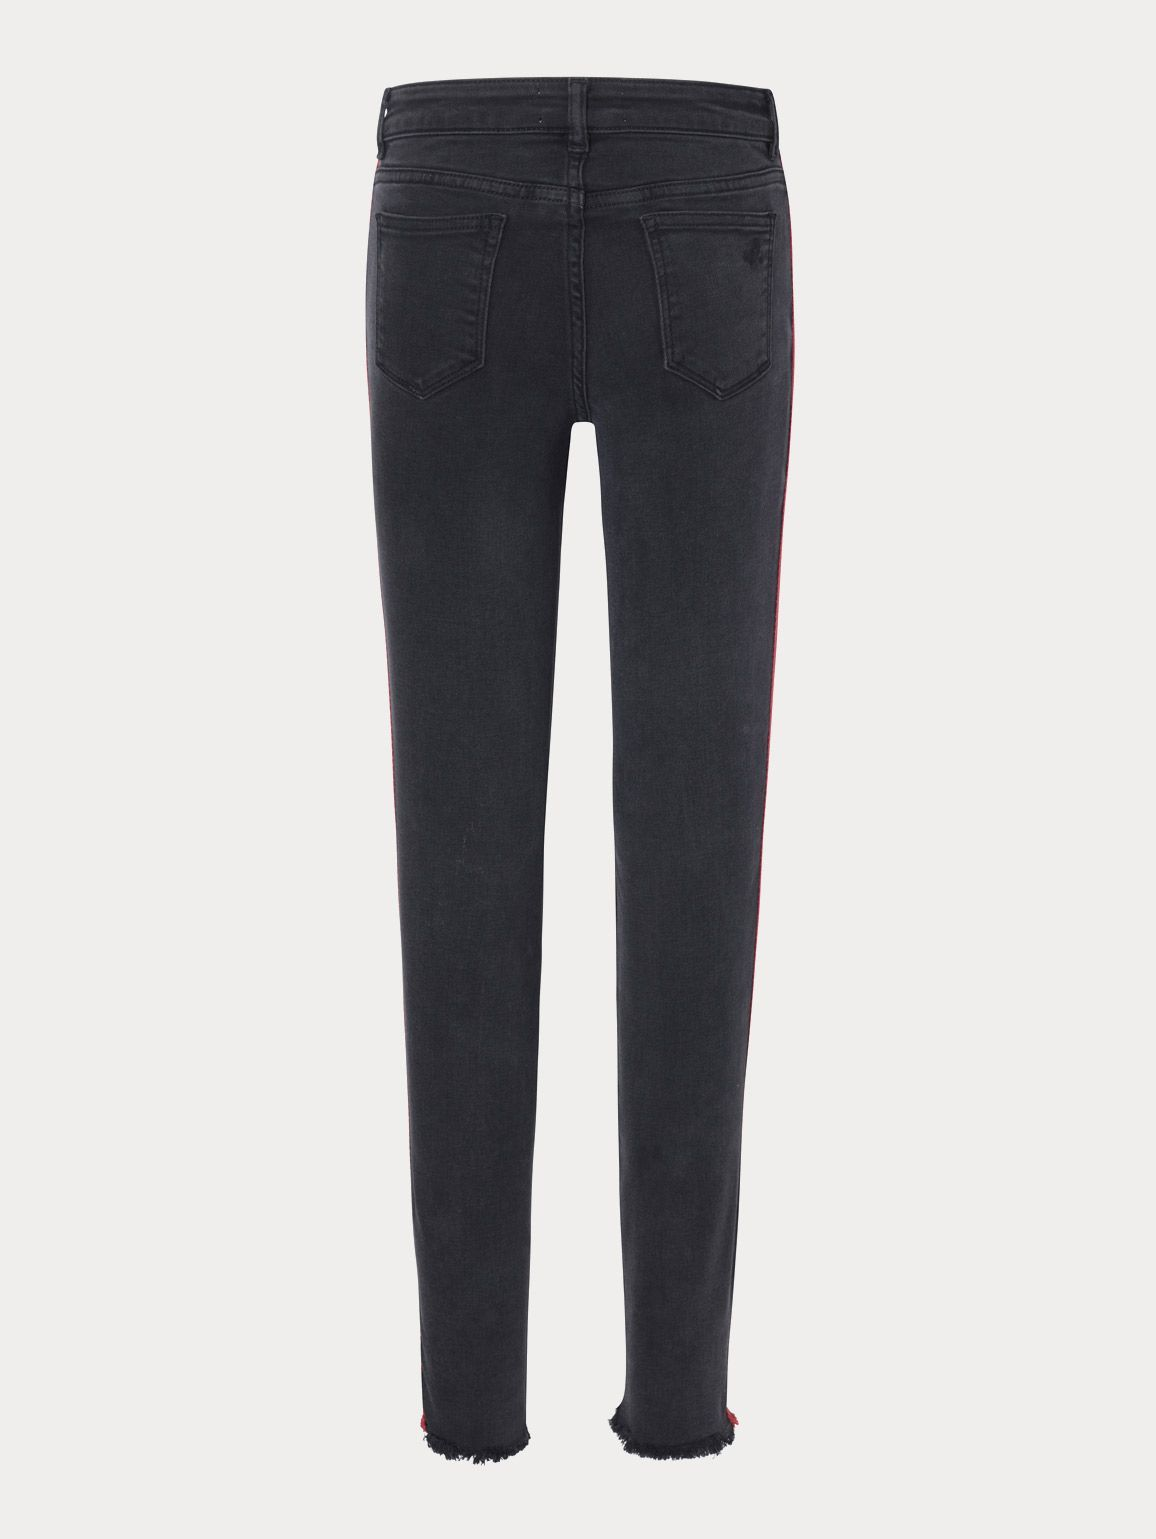 Chloe Skinny | Pop Black - DL1961